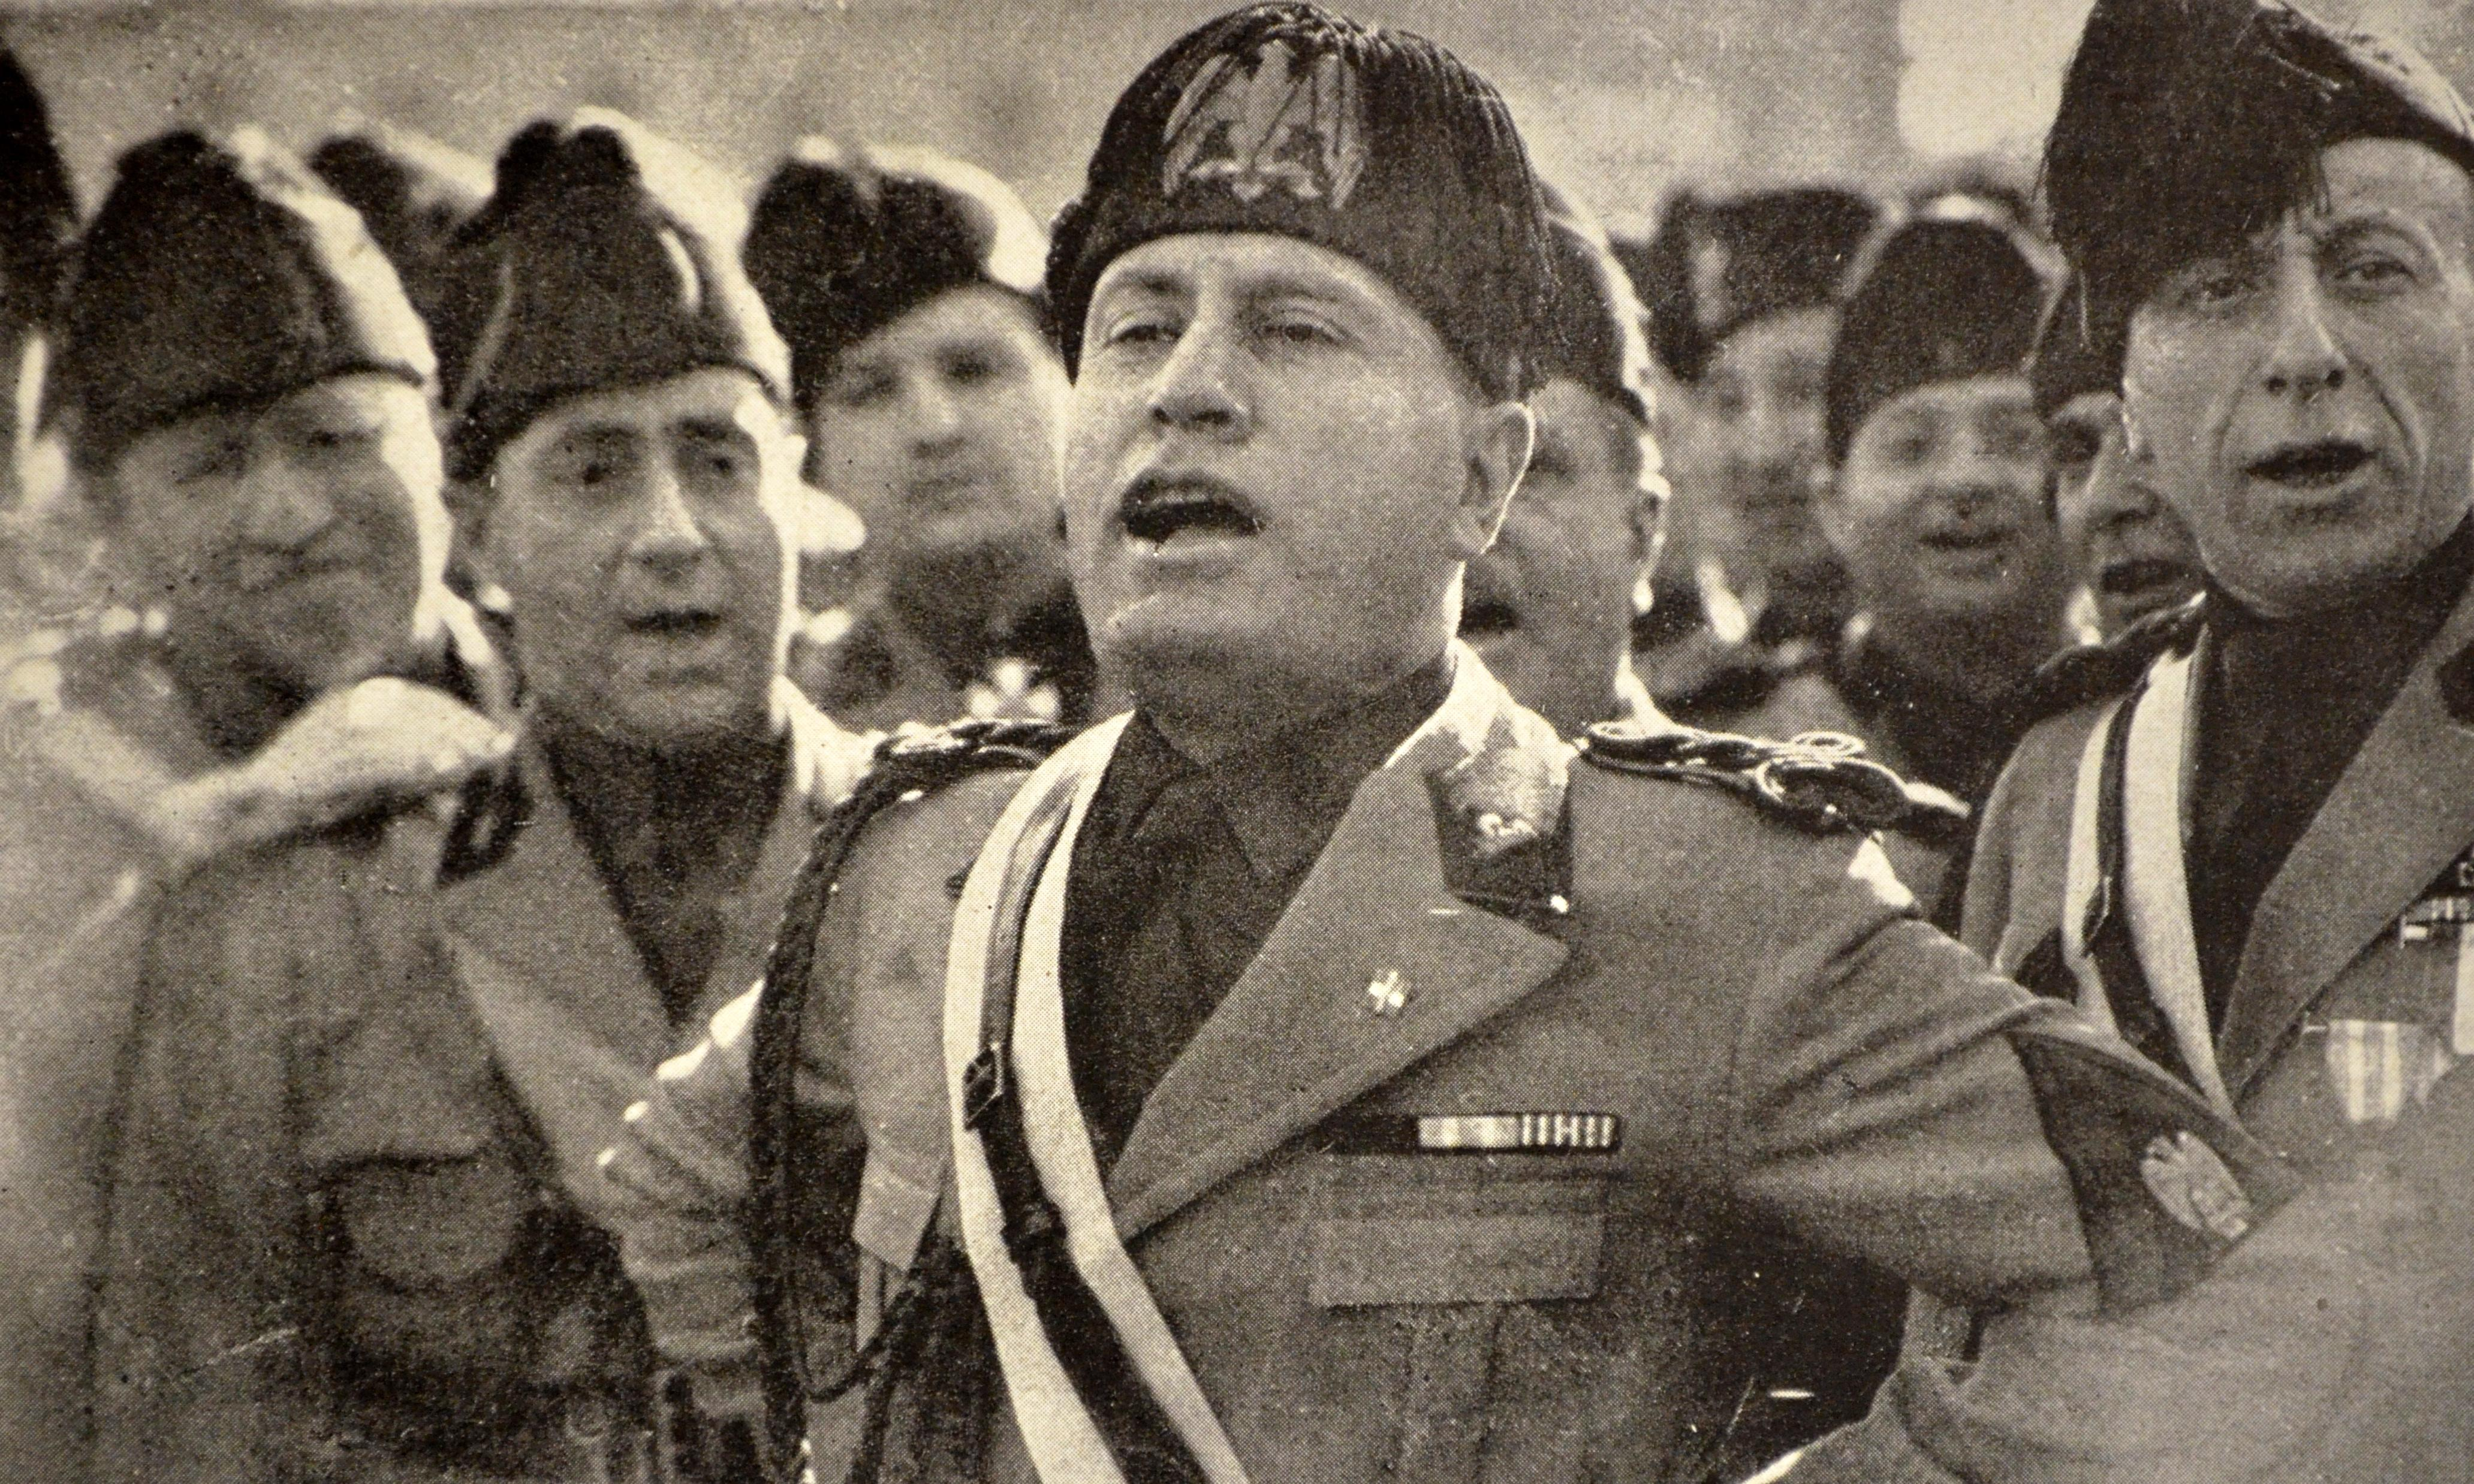 Mussolini as farmer – archive, 15 October, 1928